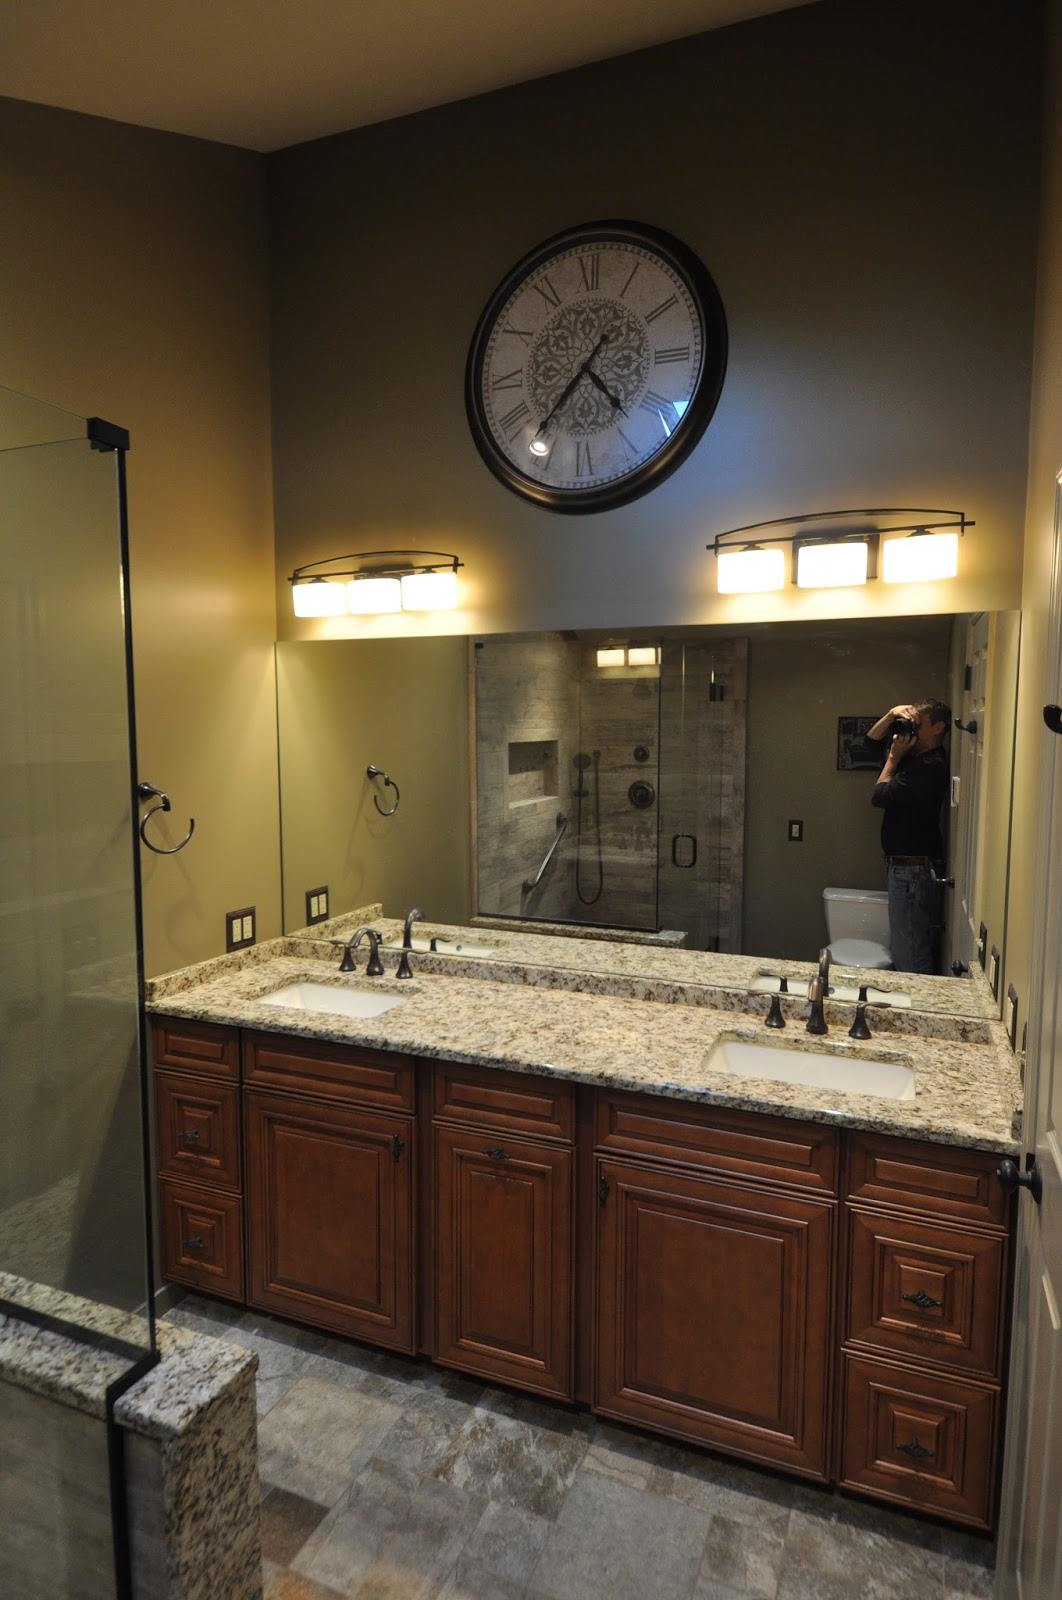 Bathroom Remodel York Pa eric marks general contracting: masterbath remodel